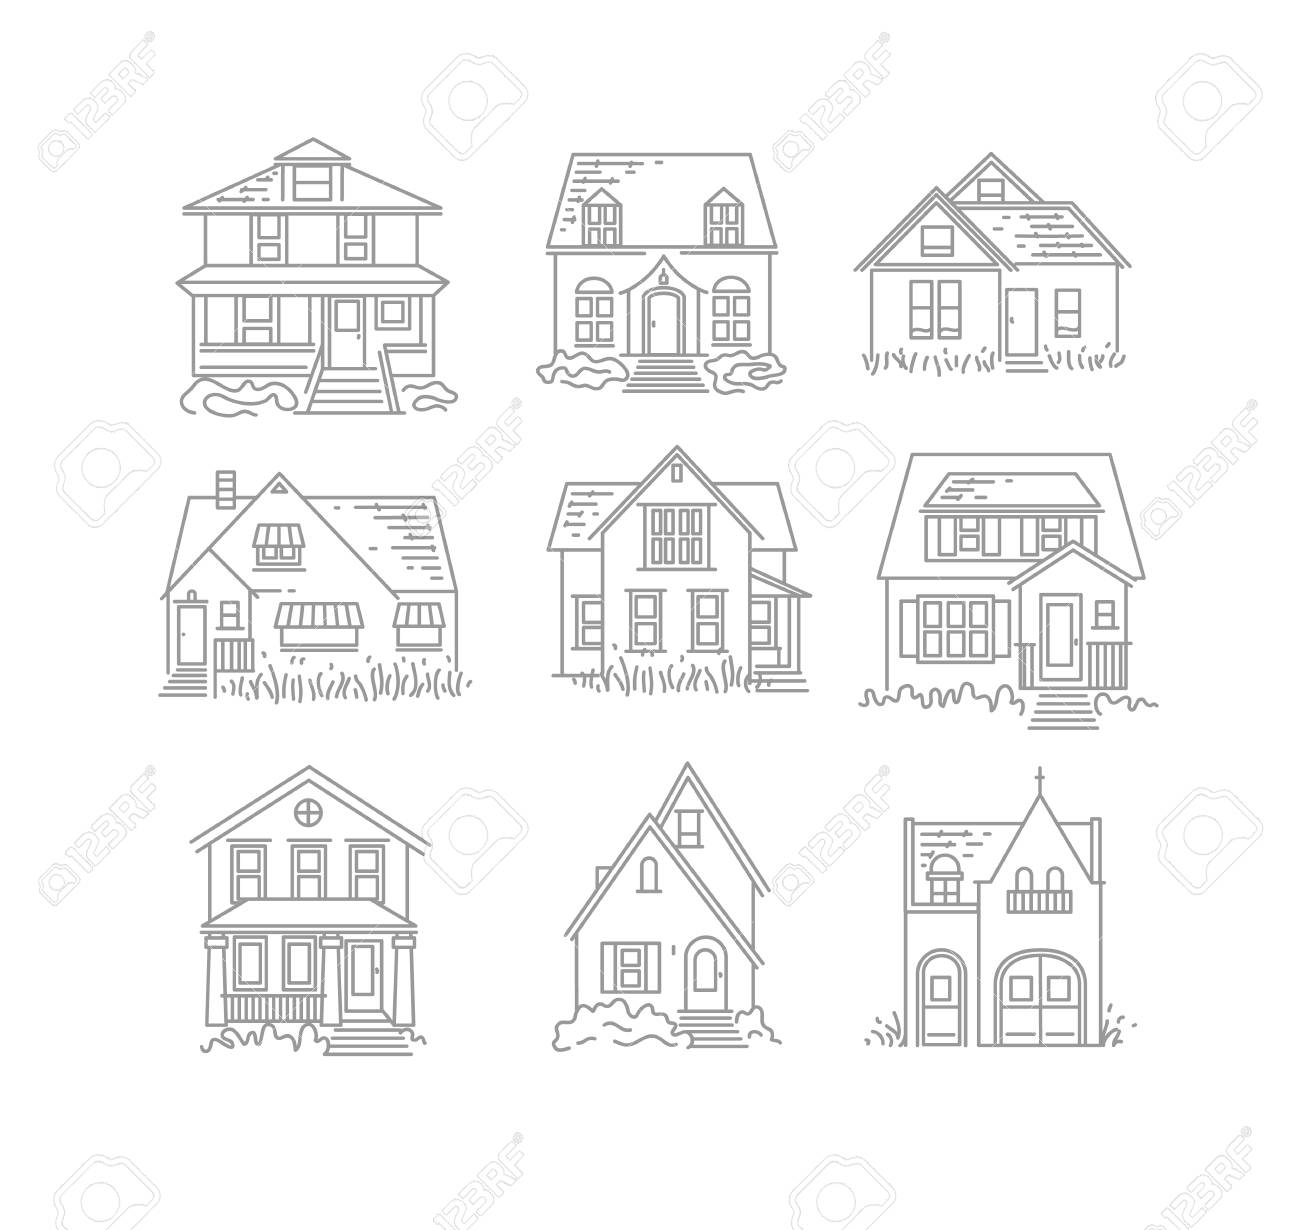 Set of house different forms icons drawing in flat style on white background - 112287361